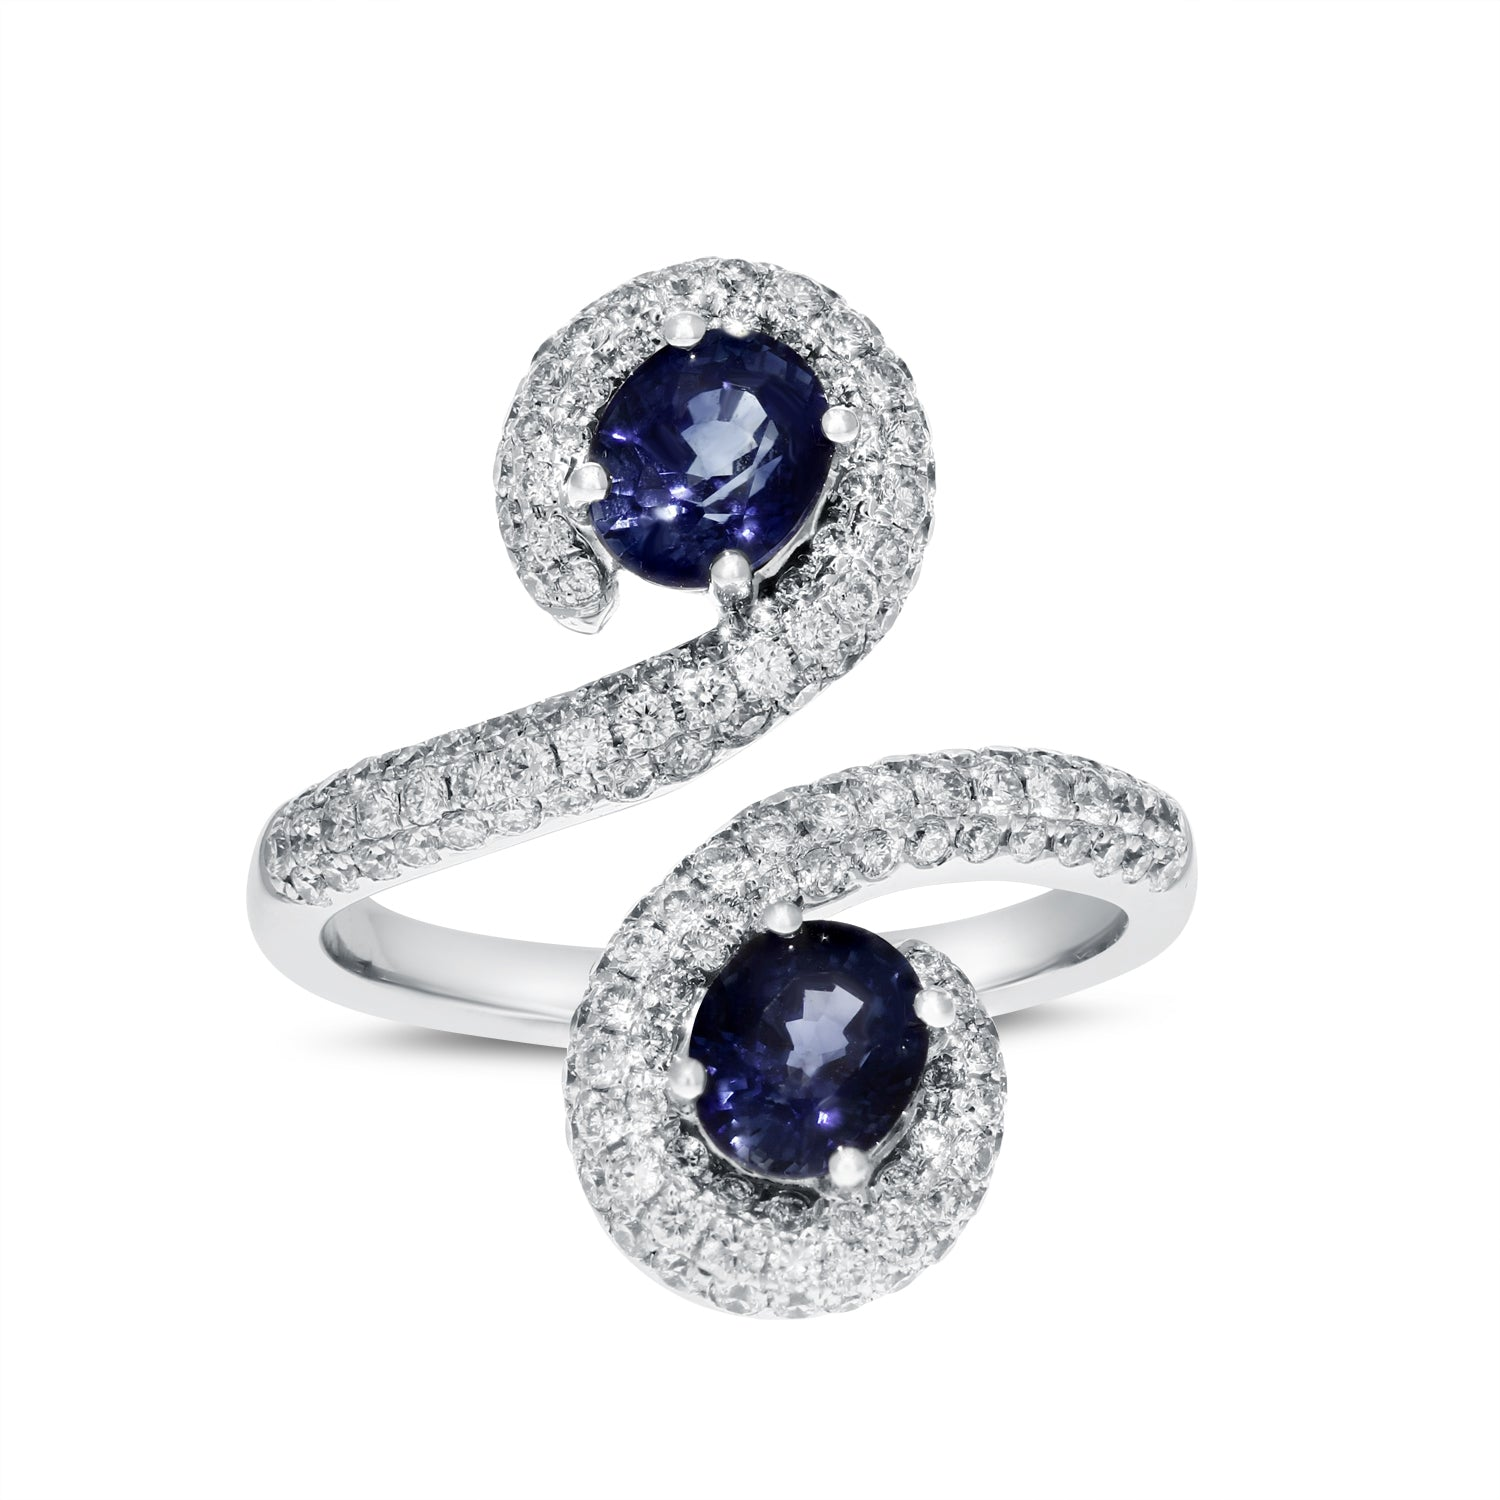 18K White Gold Diamond and Gemstone Ring, 3.40 Carats